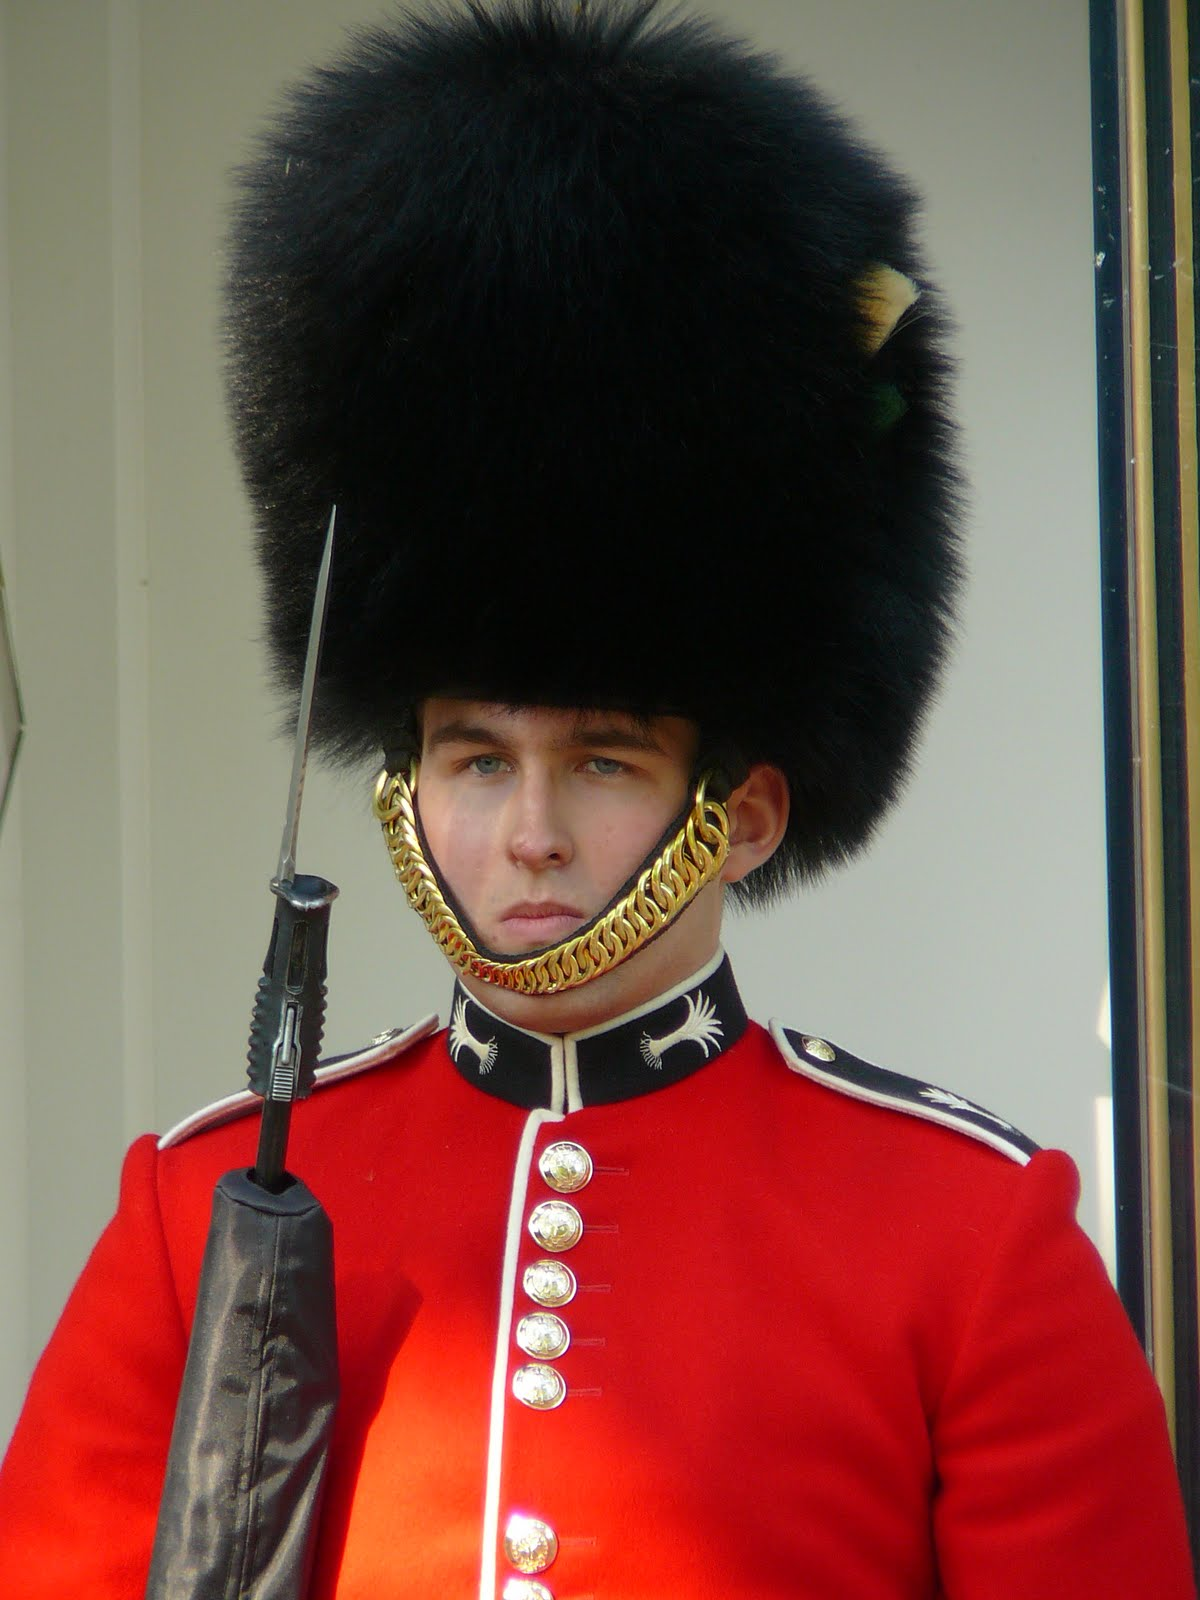 Queen's Guard points bayonet at Buckingham Palace 'intruder' |Buckingham Palace Guards Hats